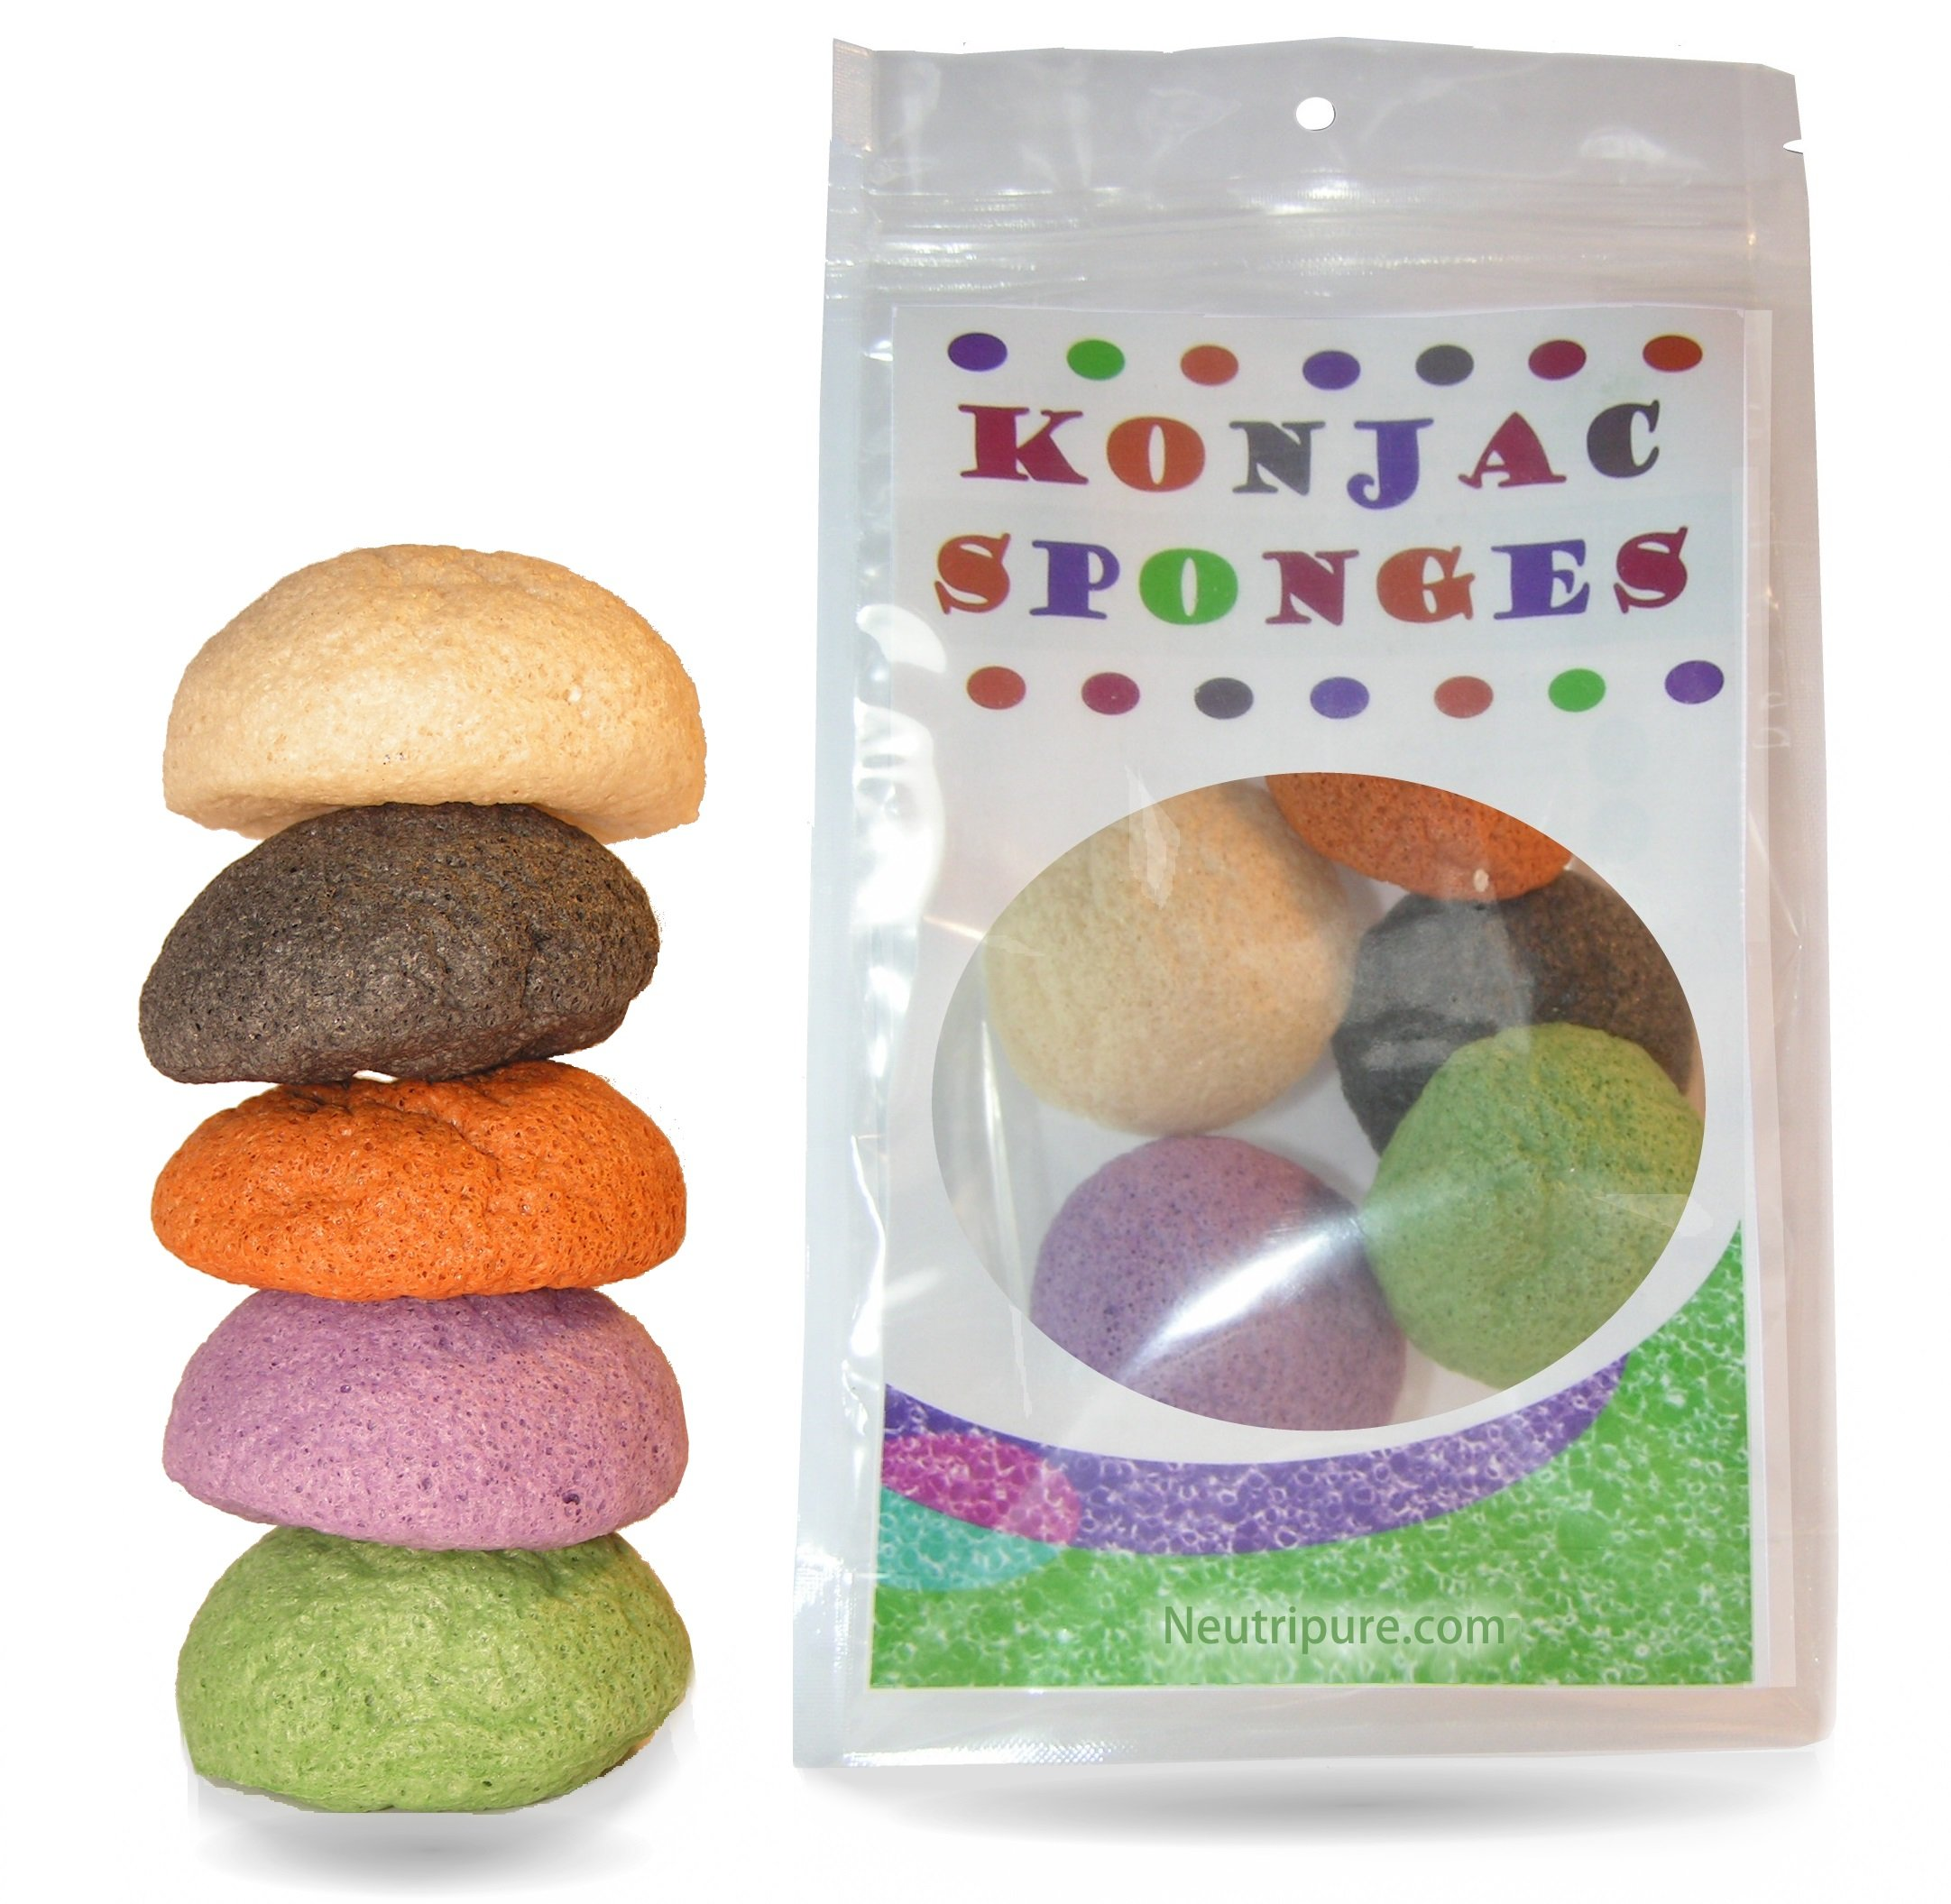 Konjac Sponge Set: Organic Skincare Facial for Natural Exfoliating and Deep Pore Cleansing 5 Piece Sampler Pack Infused with Charcoal, Turmeric, Green Tea by Konjac Lydia (Image #1)